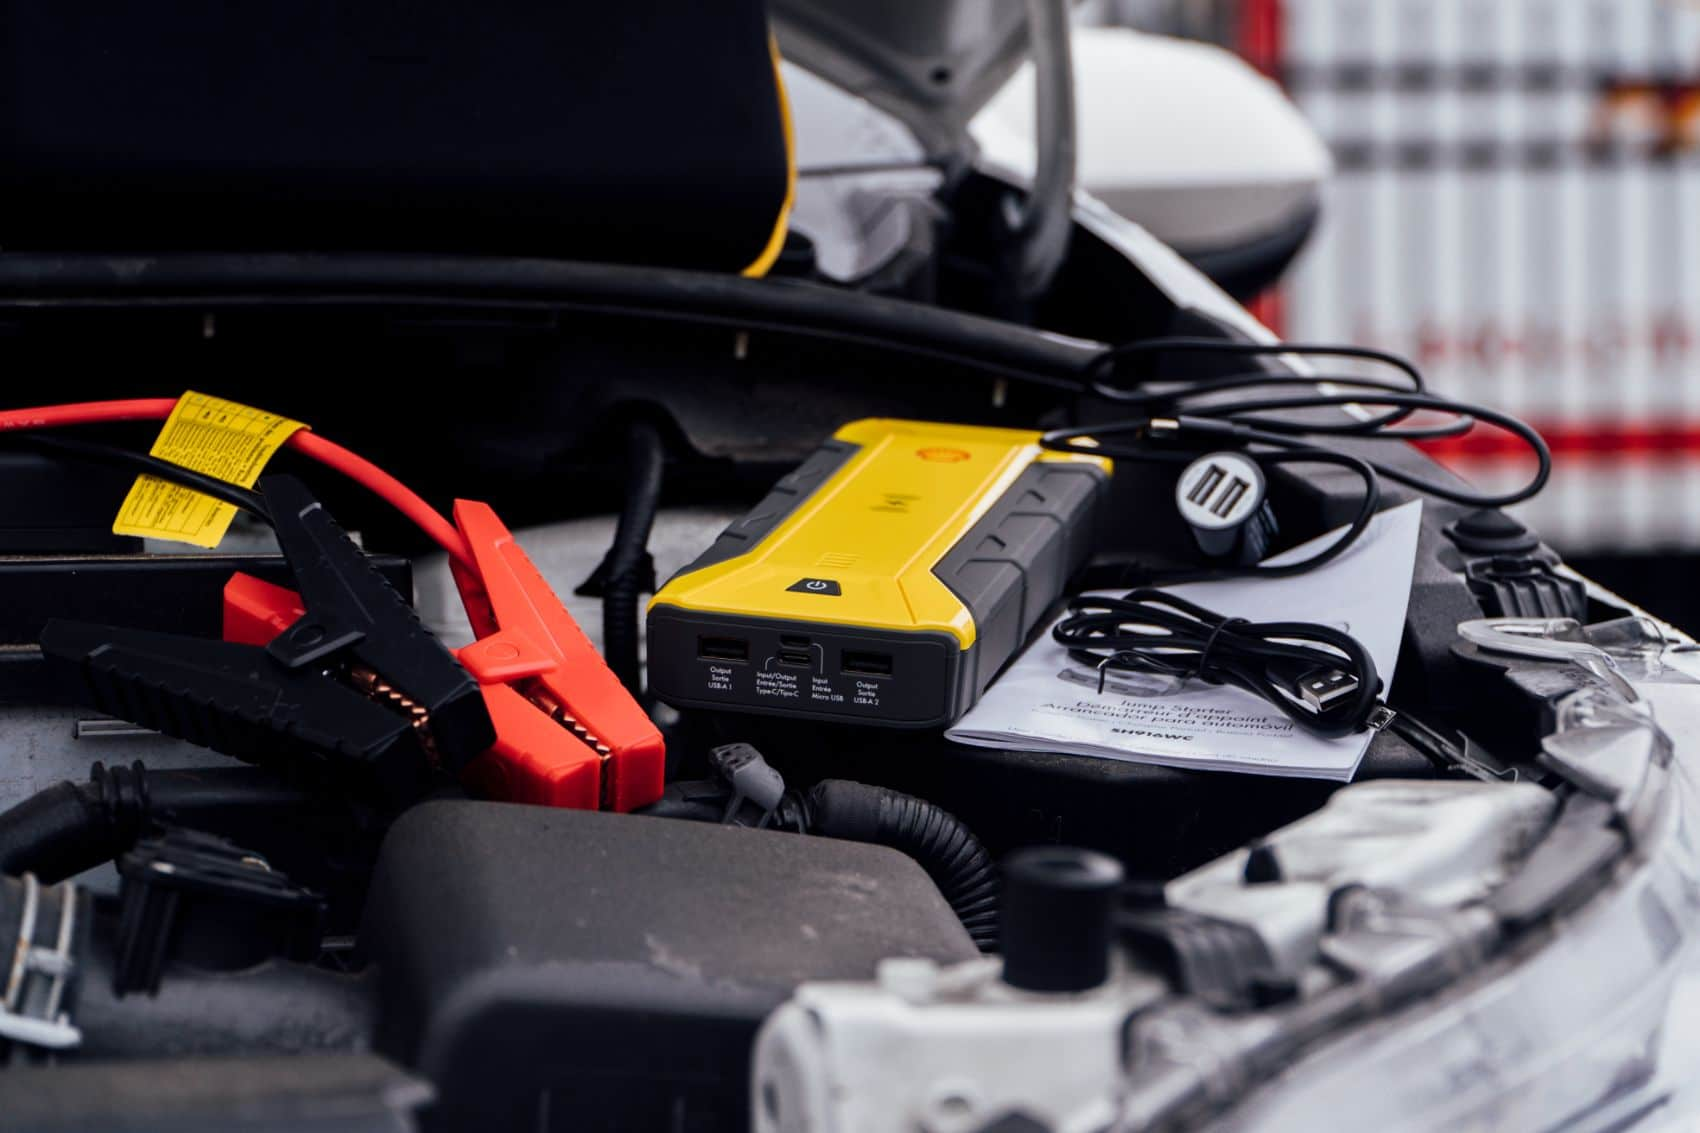 1200A Shell Portable Jump Starter Review: How It Works & Should You Buy It?